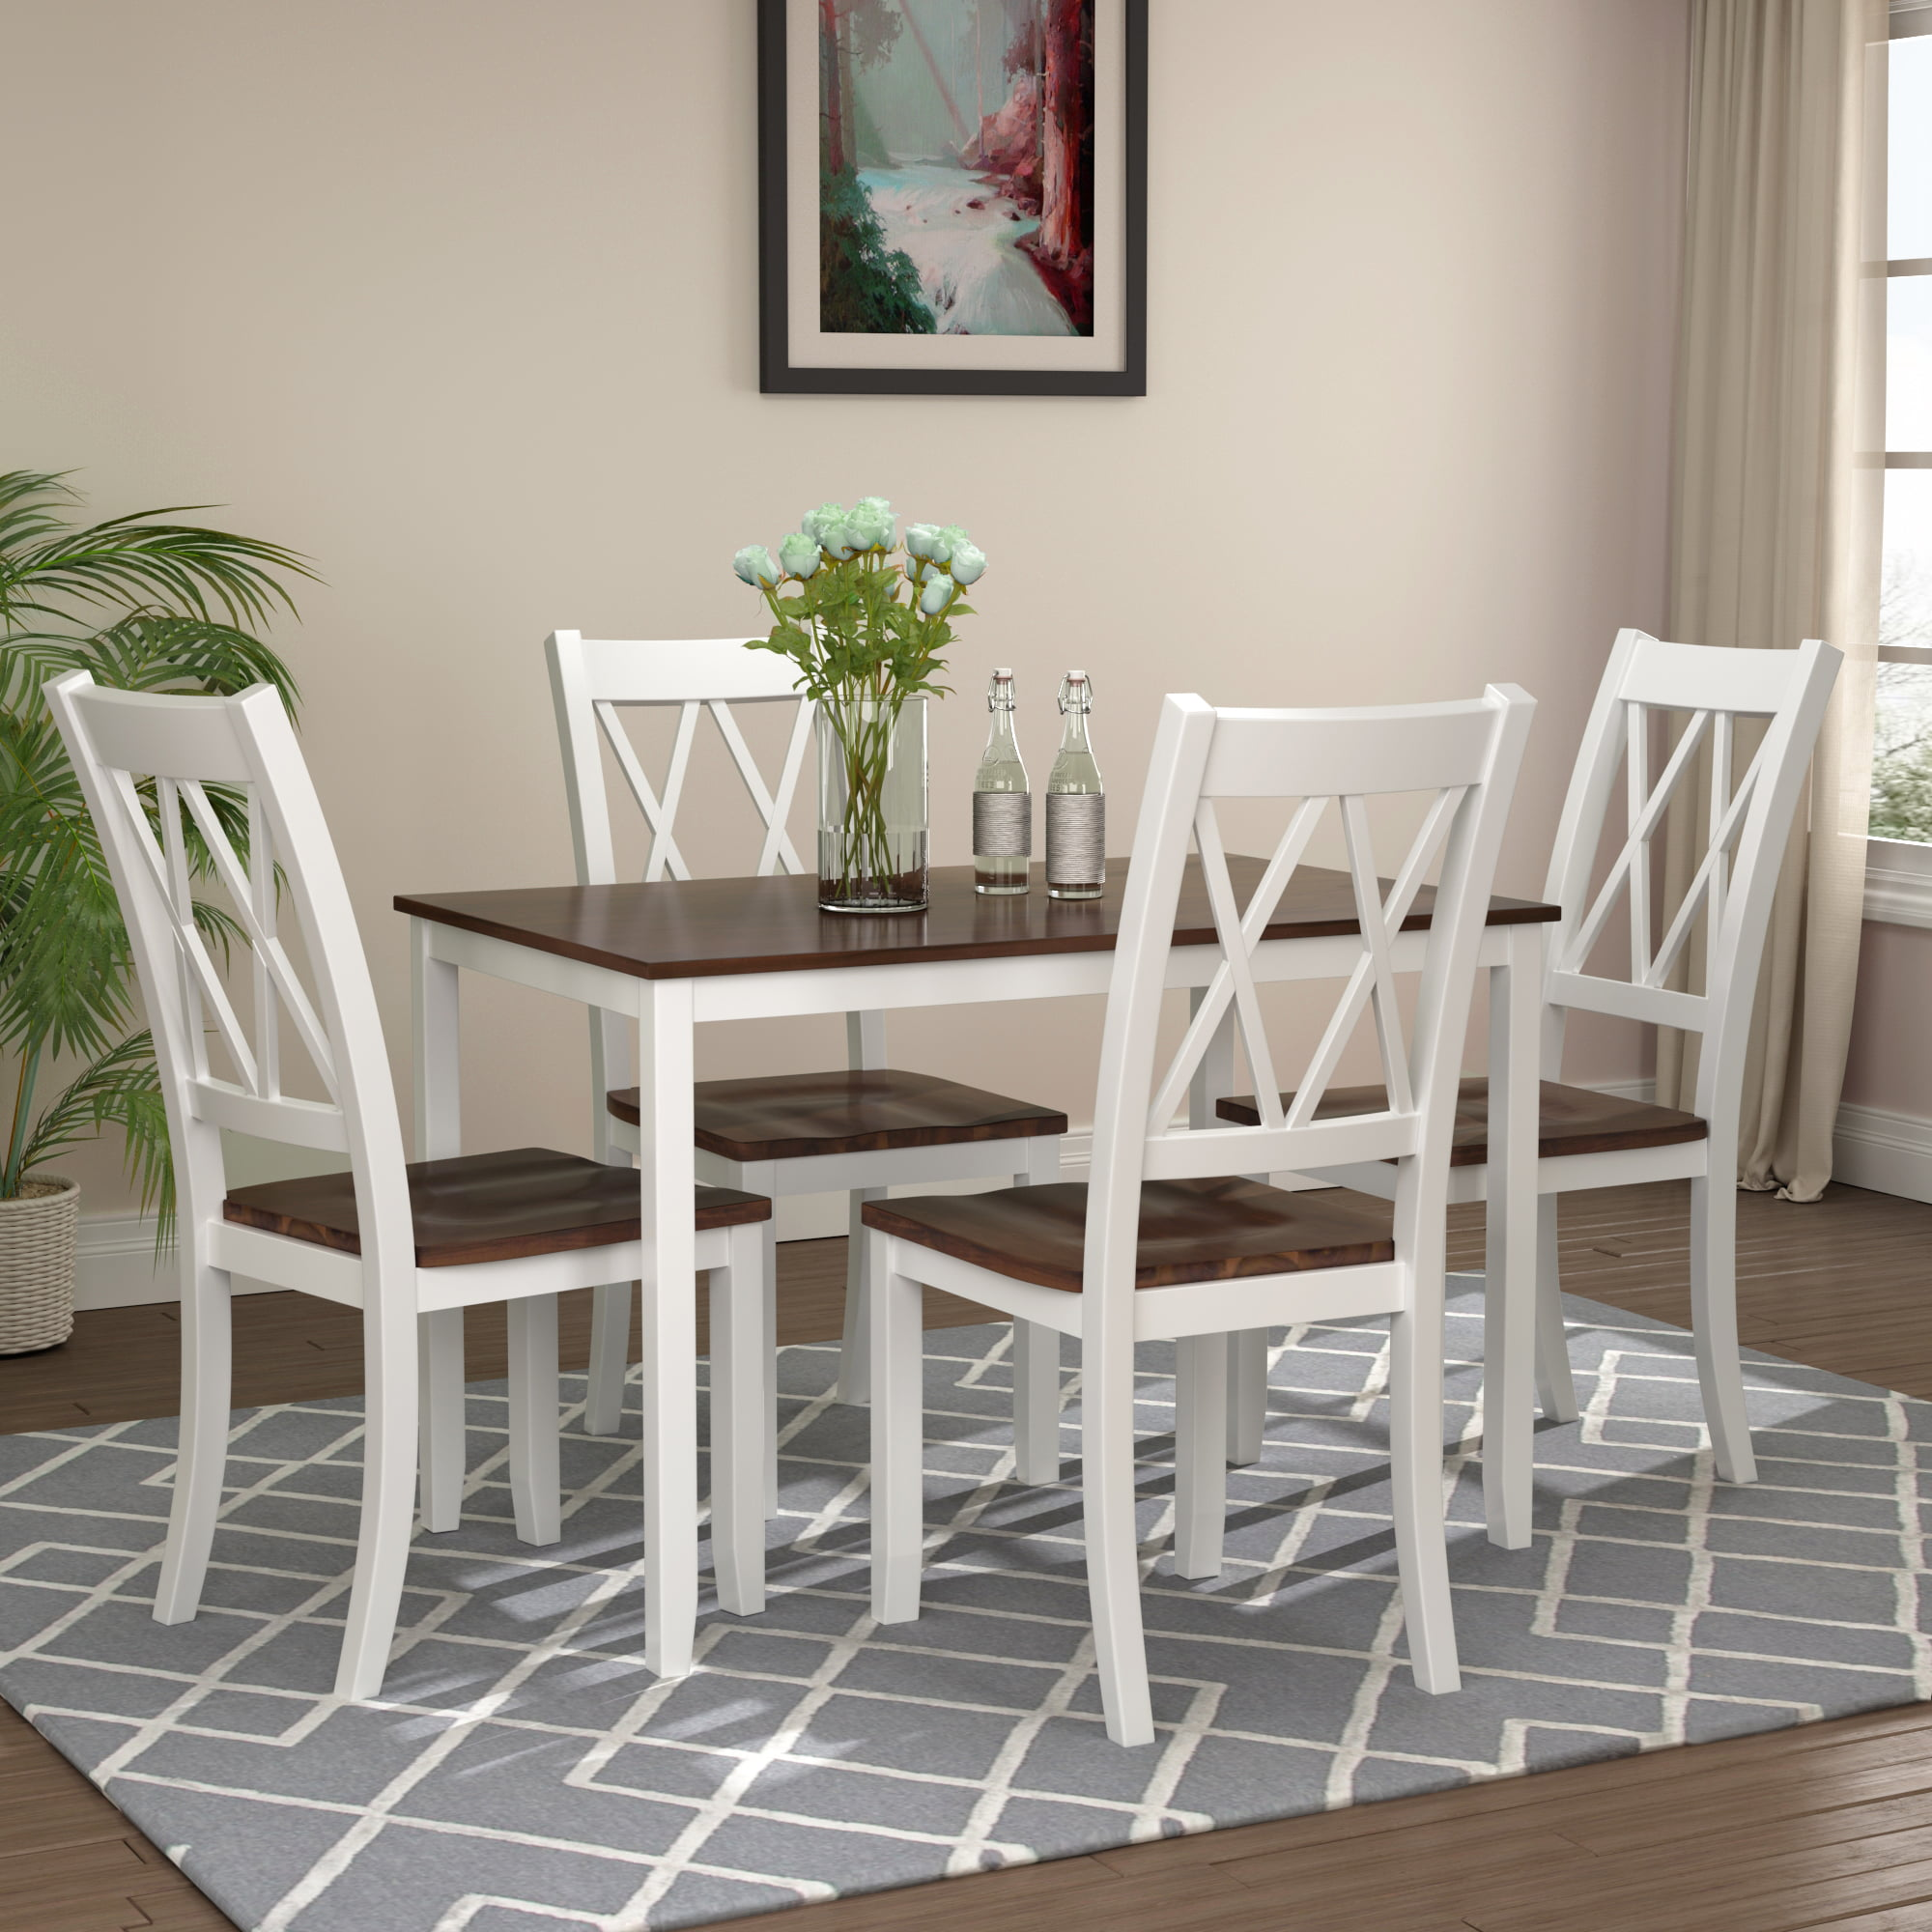 Clearance! Dining Table Set with 4 Chairs, 5 Piece Wooden ...